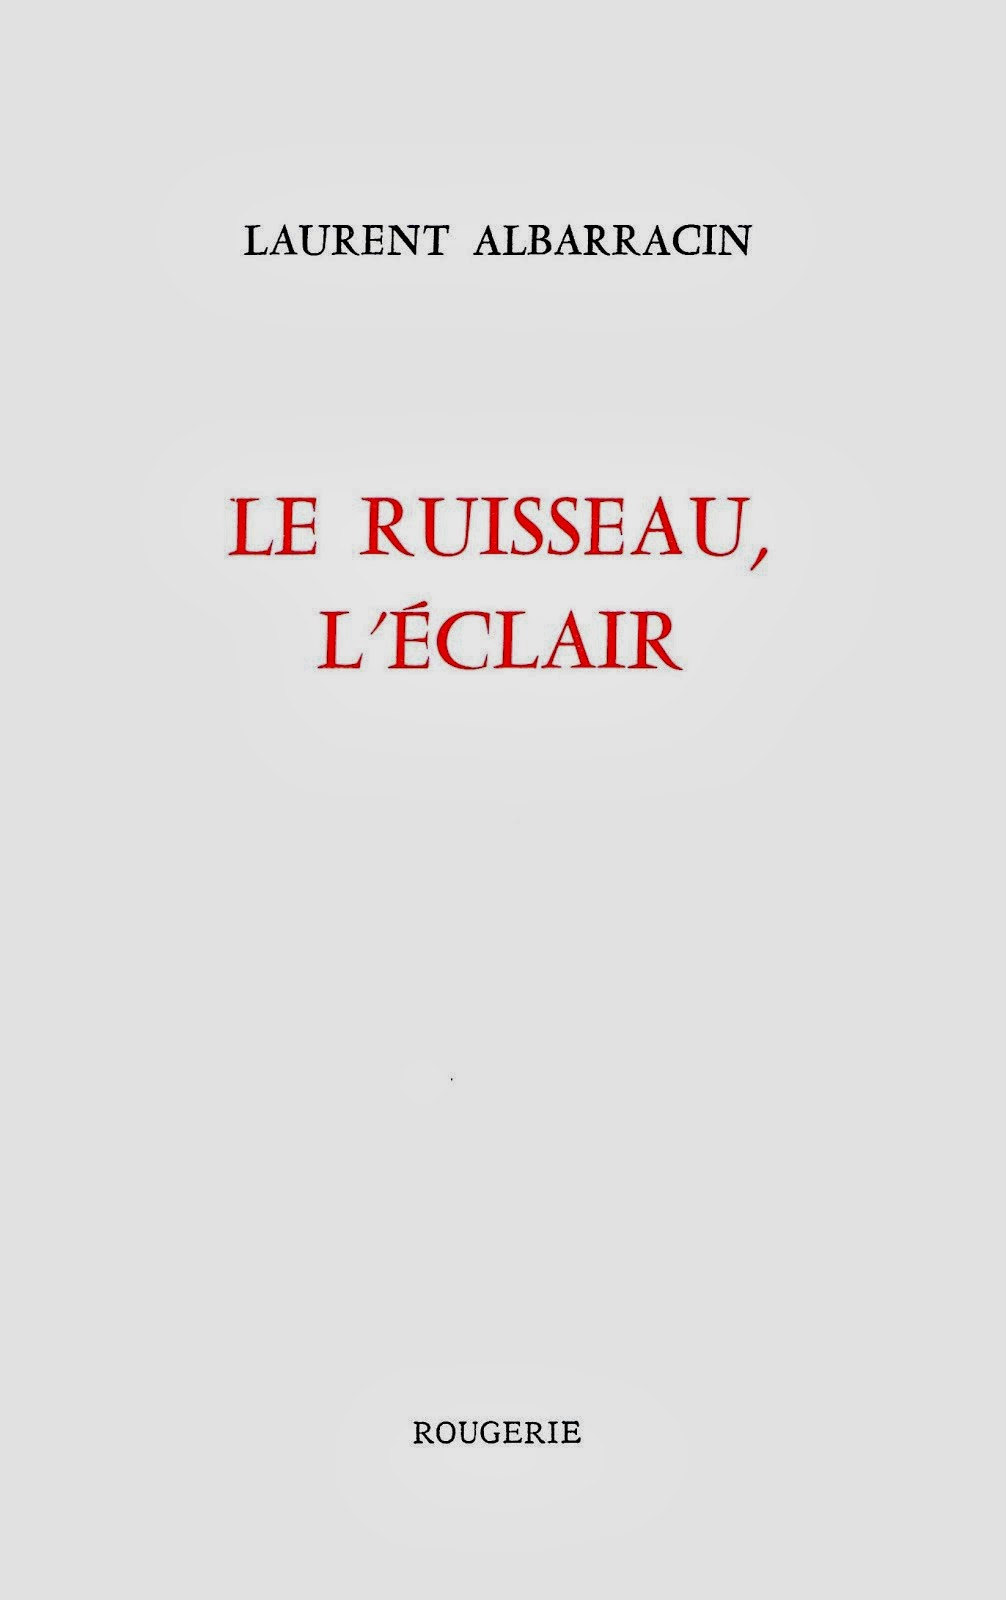 Laurent ALBARRACIN, LE RUISSEAU, L'ÉCLAIR, ÉDITIONS ROUGERIE